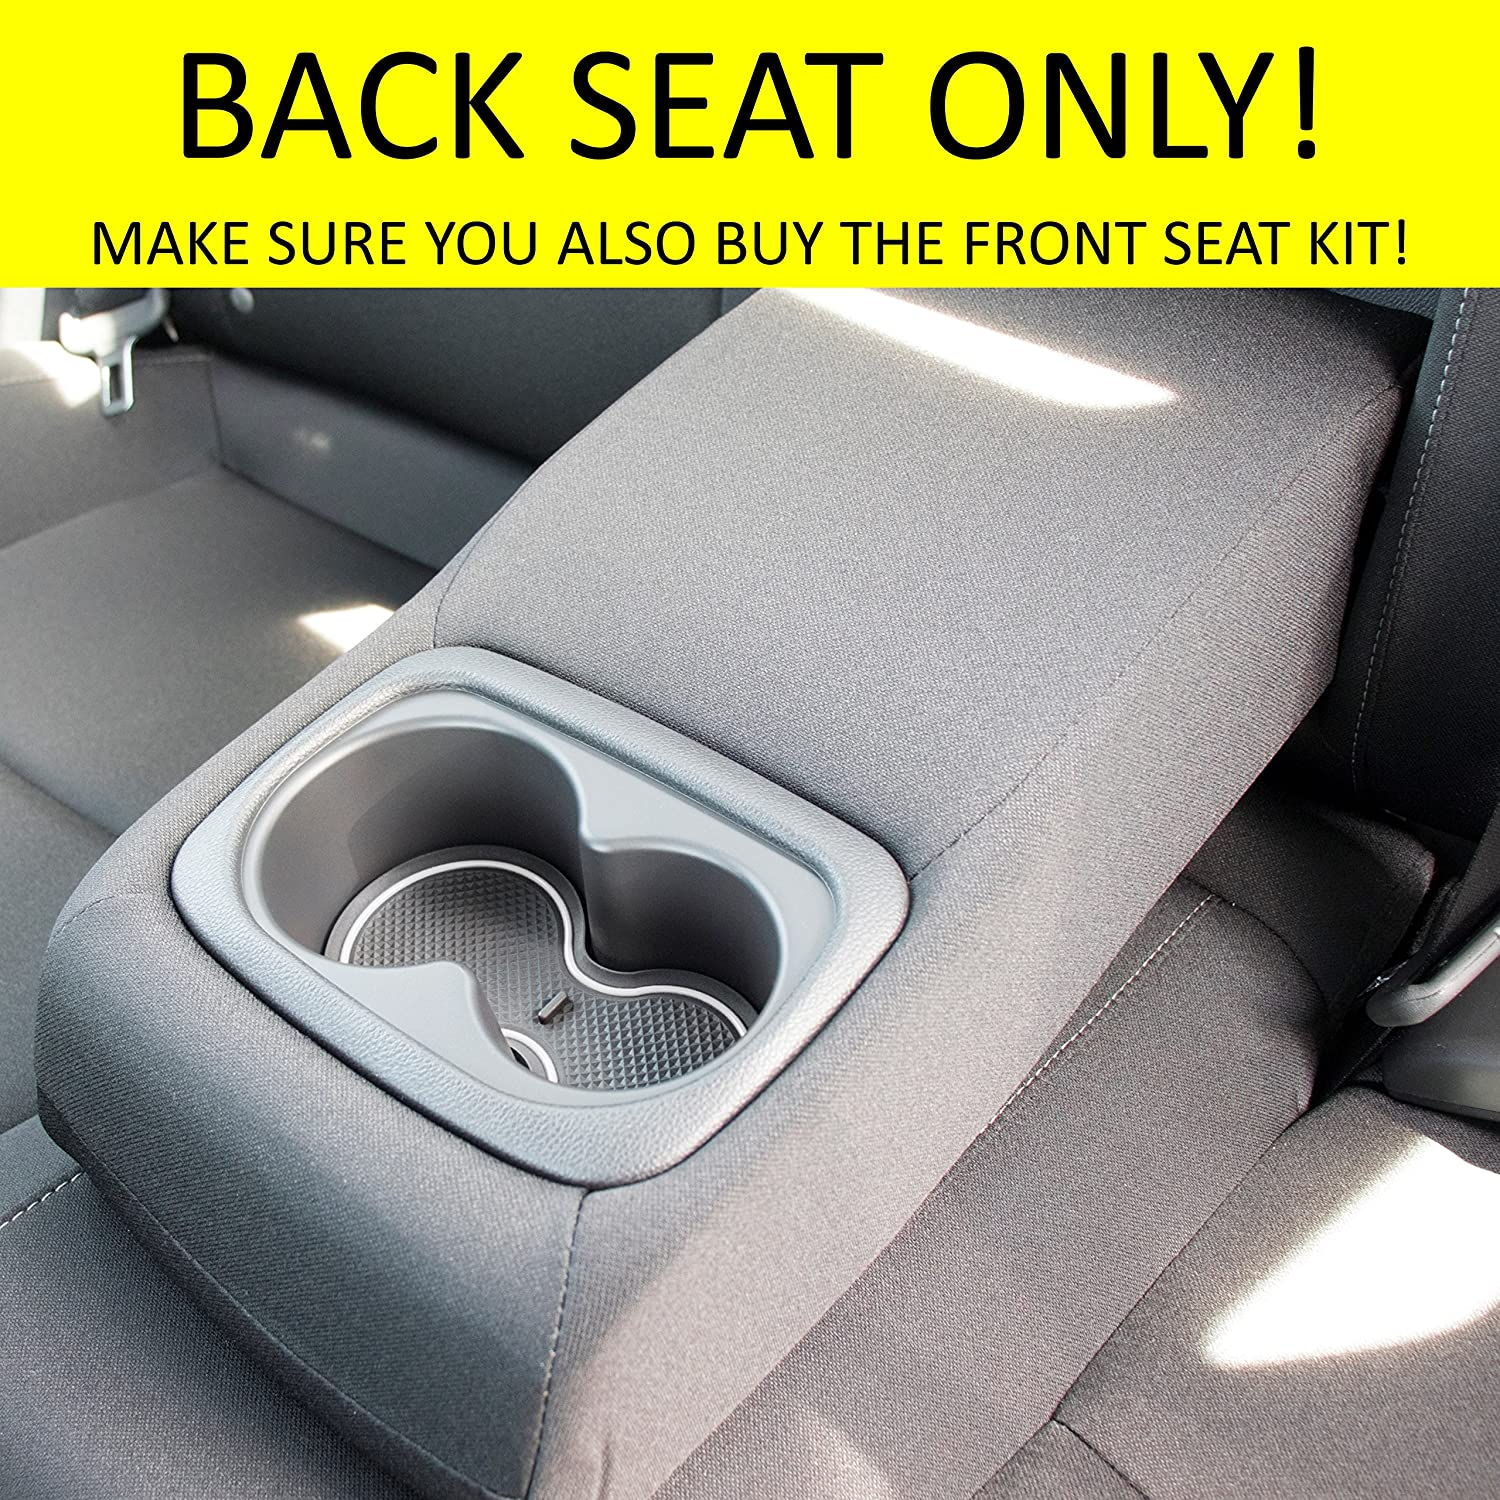 Custom Fit Cup Front Seat, Solid Black Door and Center Console Liner Accessories for Honda Civic 2019 2018 2017 2016 15-pc Set